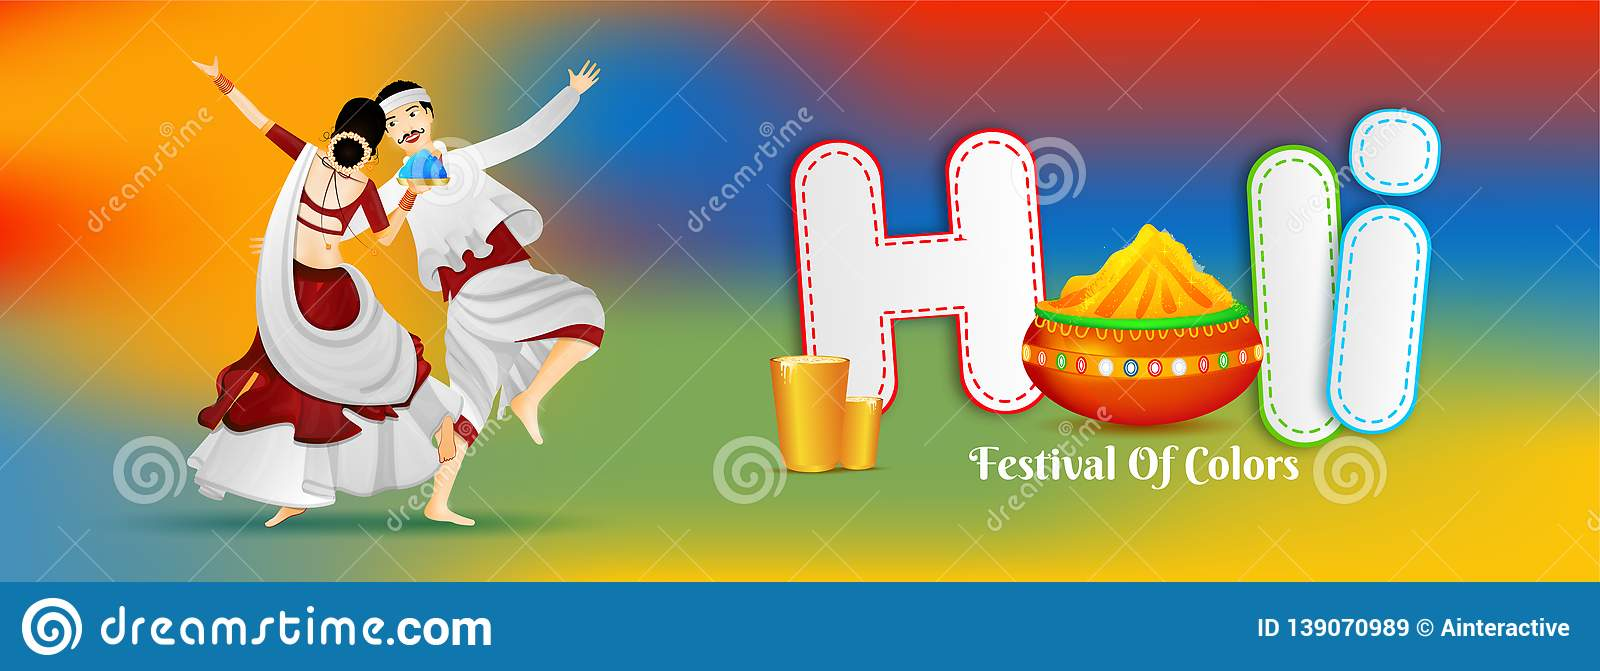 Dancing Couple Character With Paper Text Holi And Color Pot On Glossy Colorful Background Stock Illustration Illustration Of Dancing Header 139070989